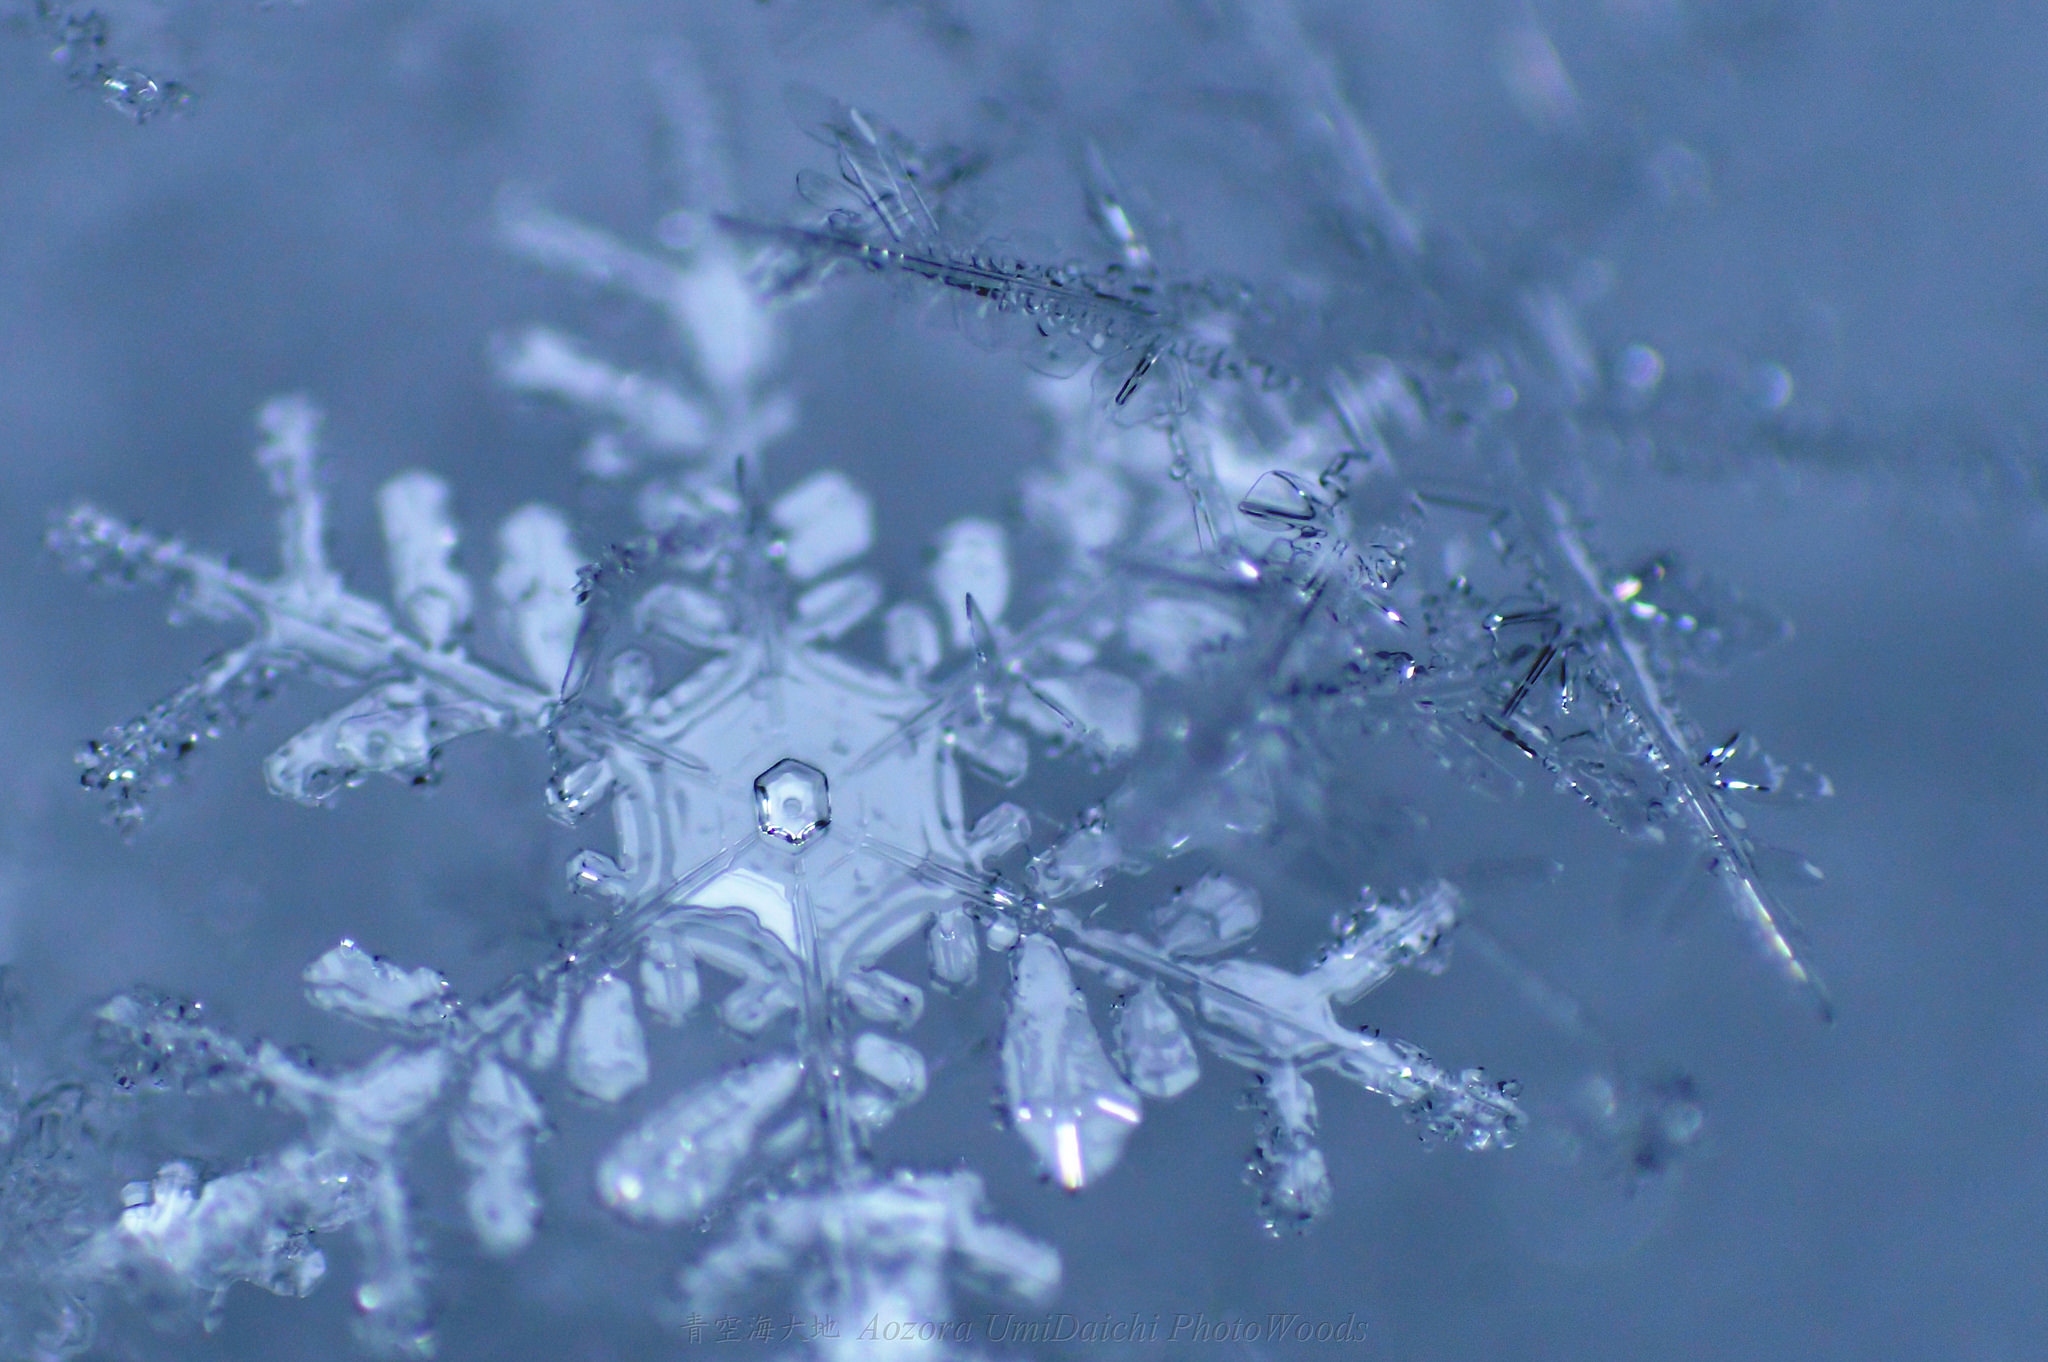 snow crystal https://www.flickr.com/photos/151798735@N05/33574539376/in/album-72157680437808676/